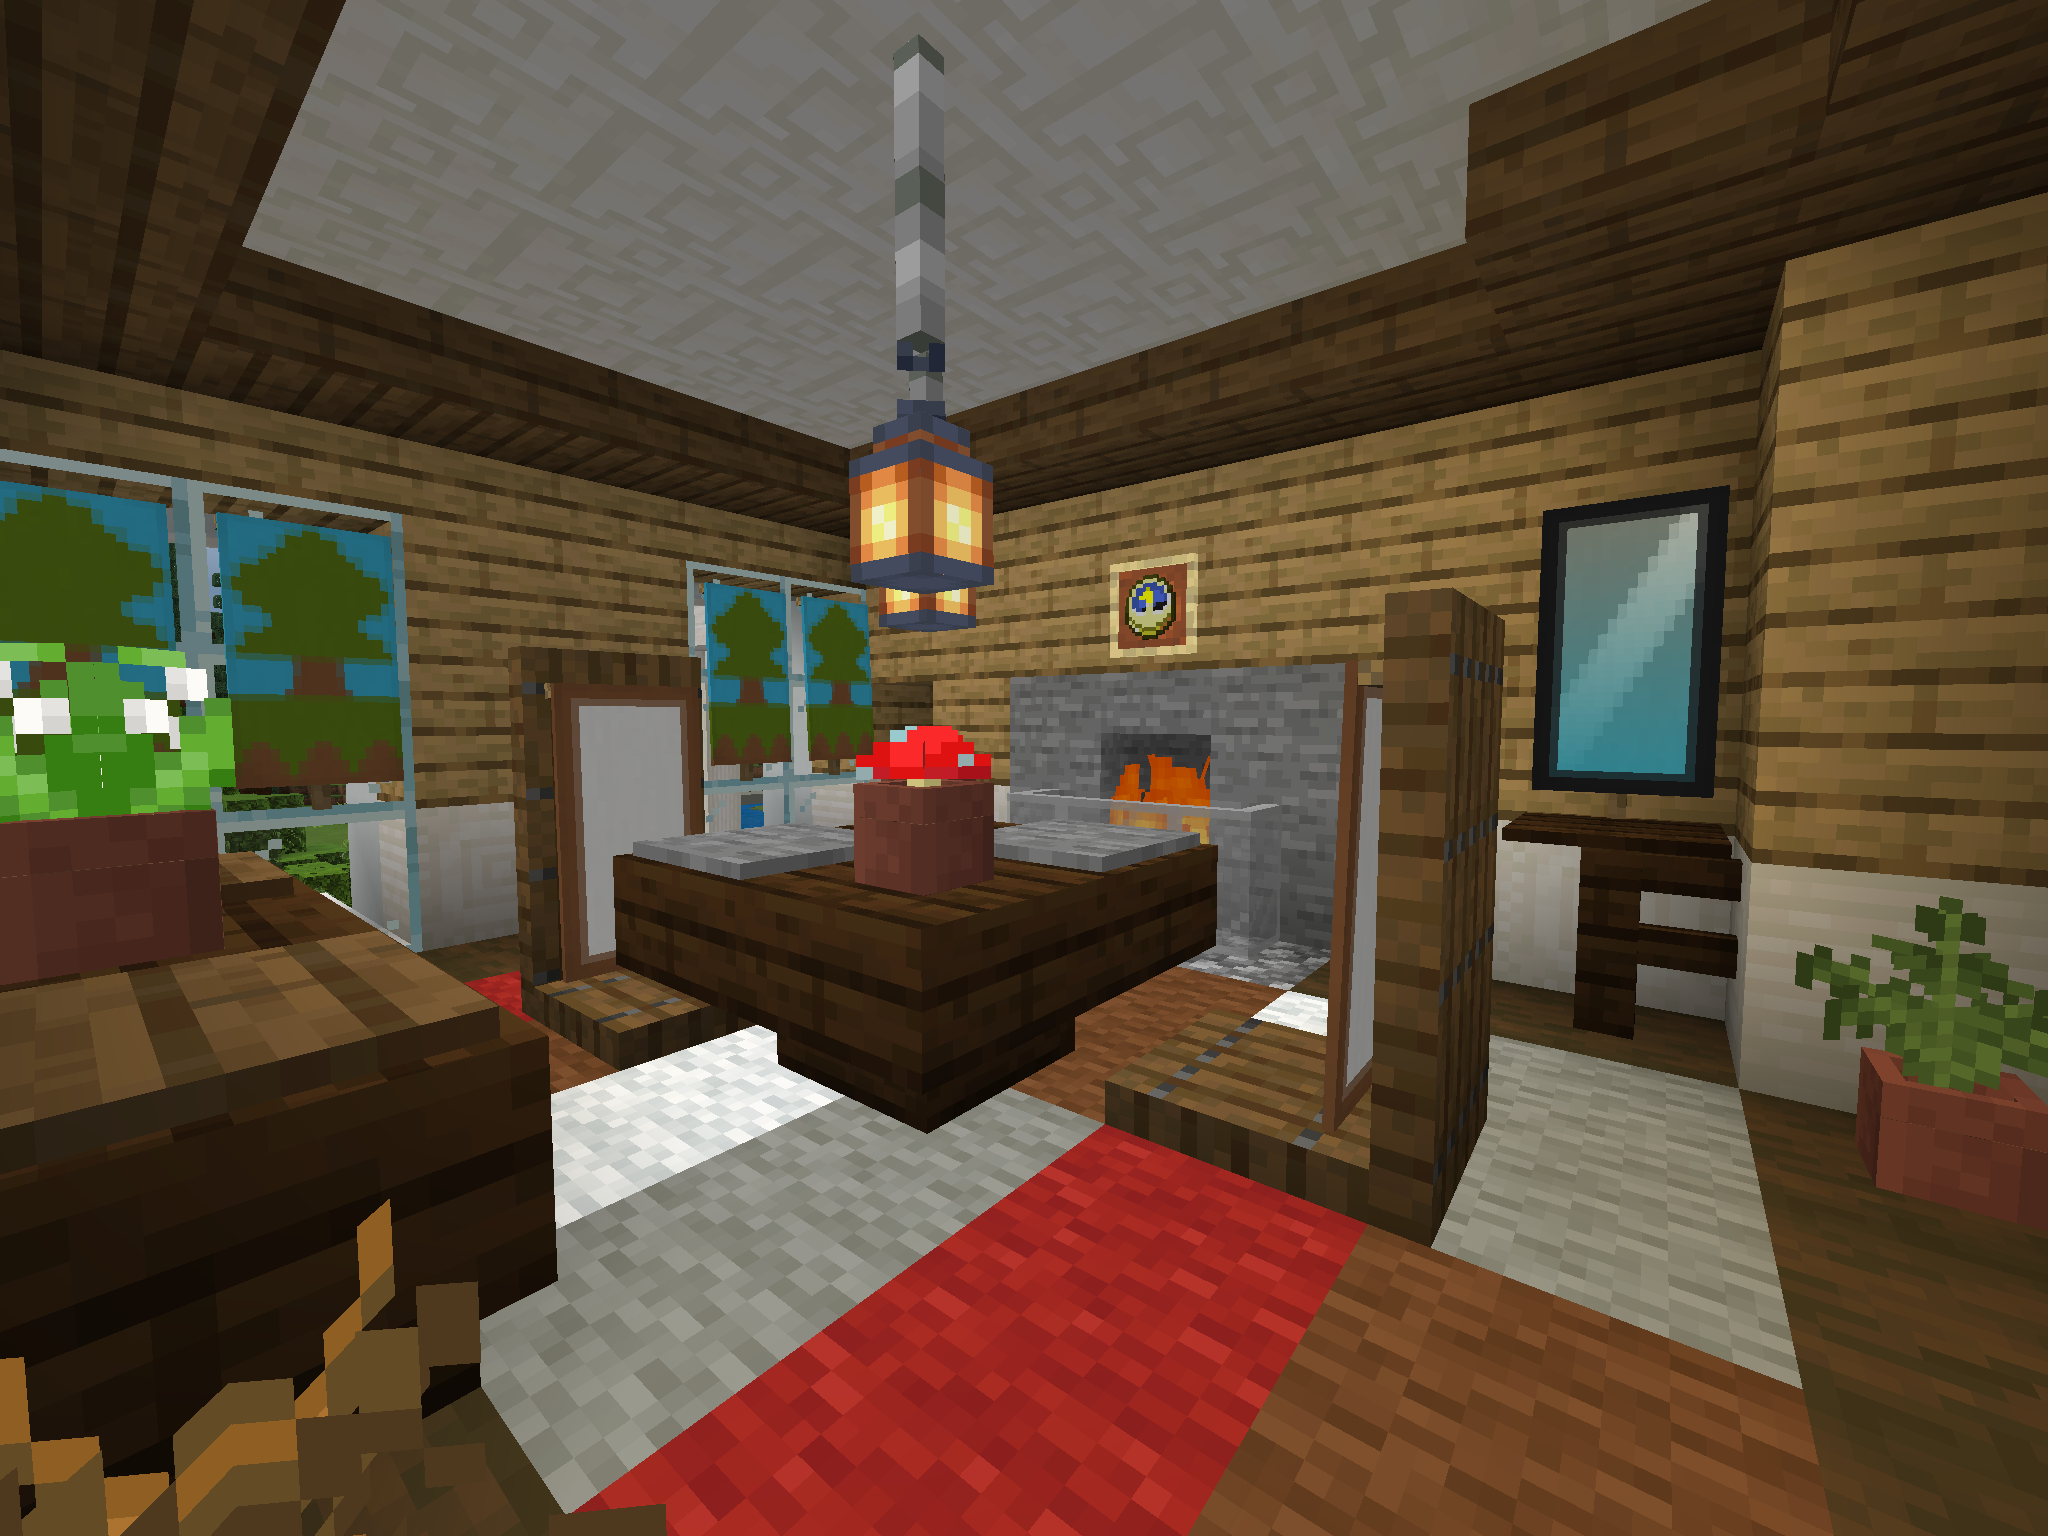 Private Dining Room Minecraft Interior Design Minecraft Designs House Design